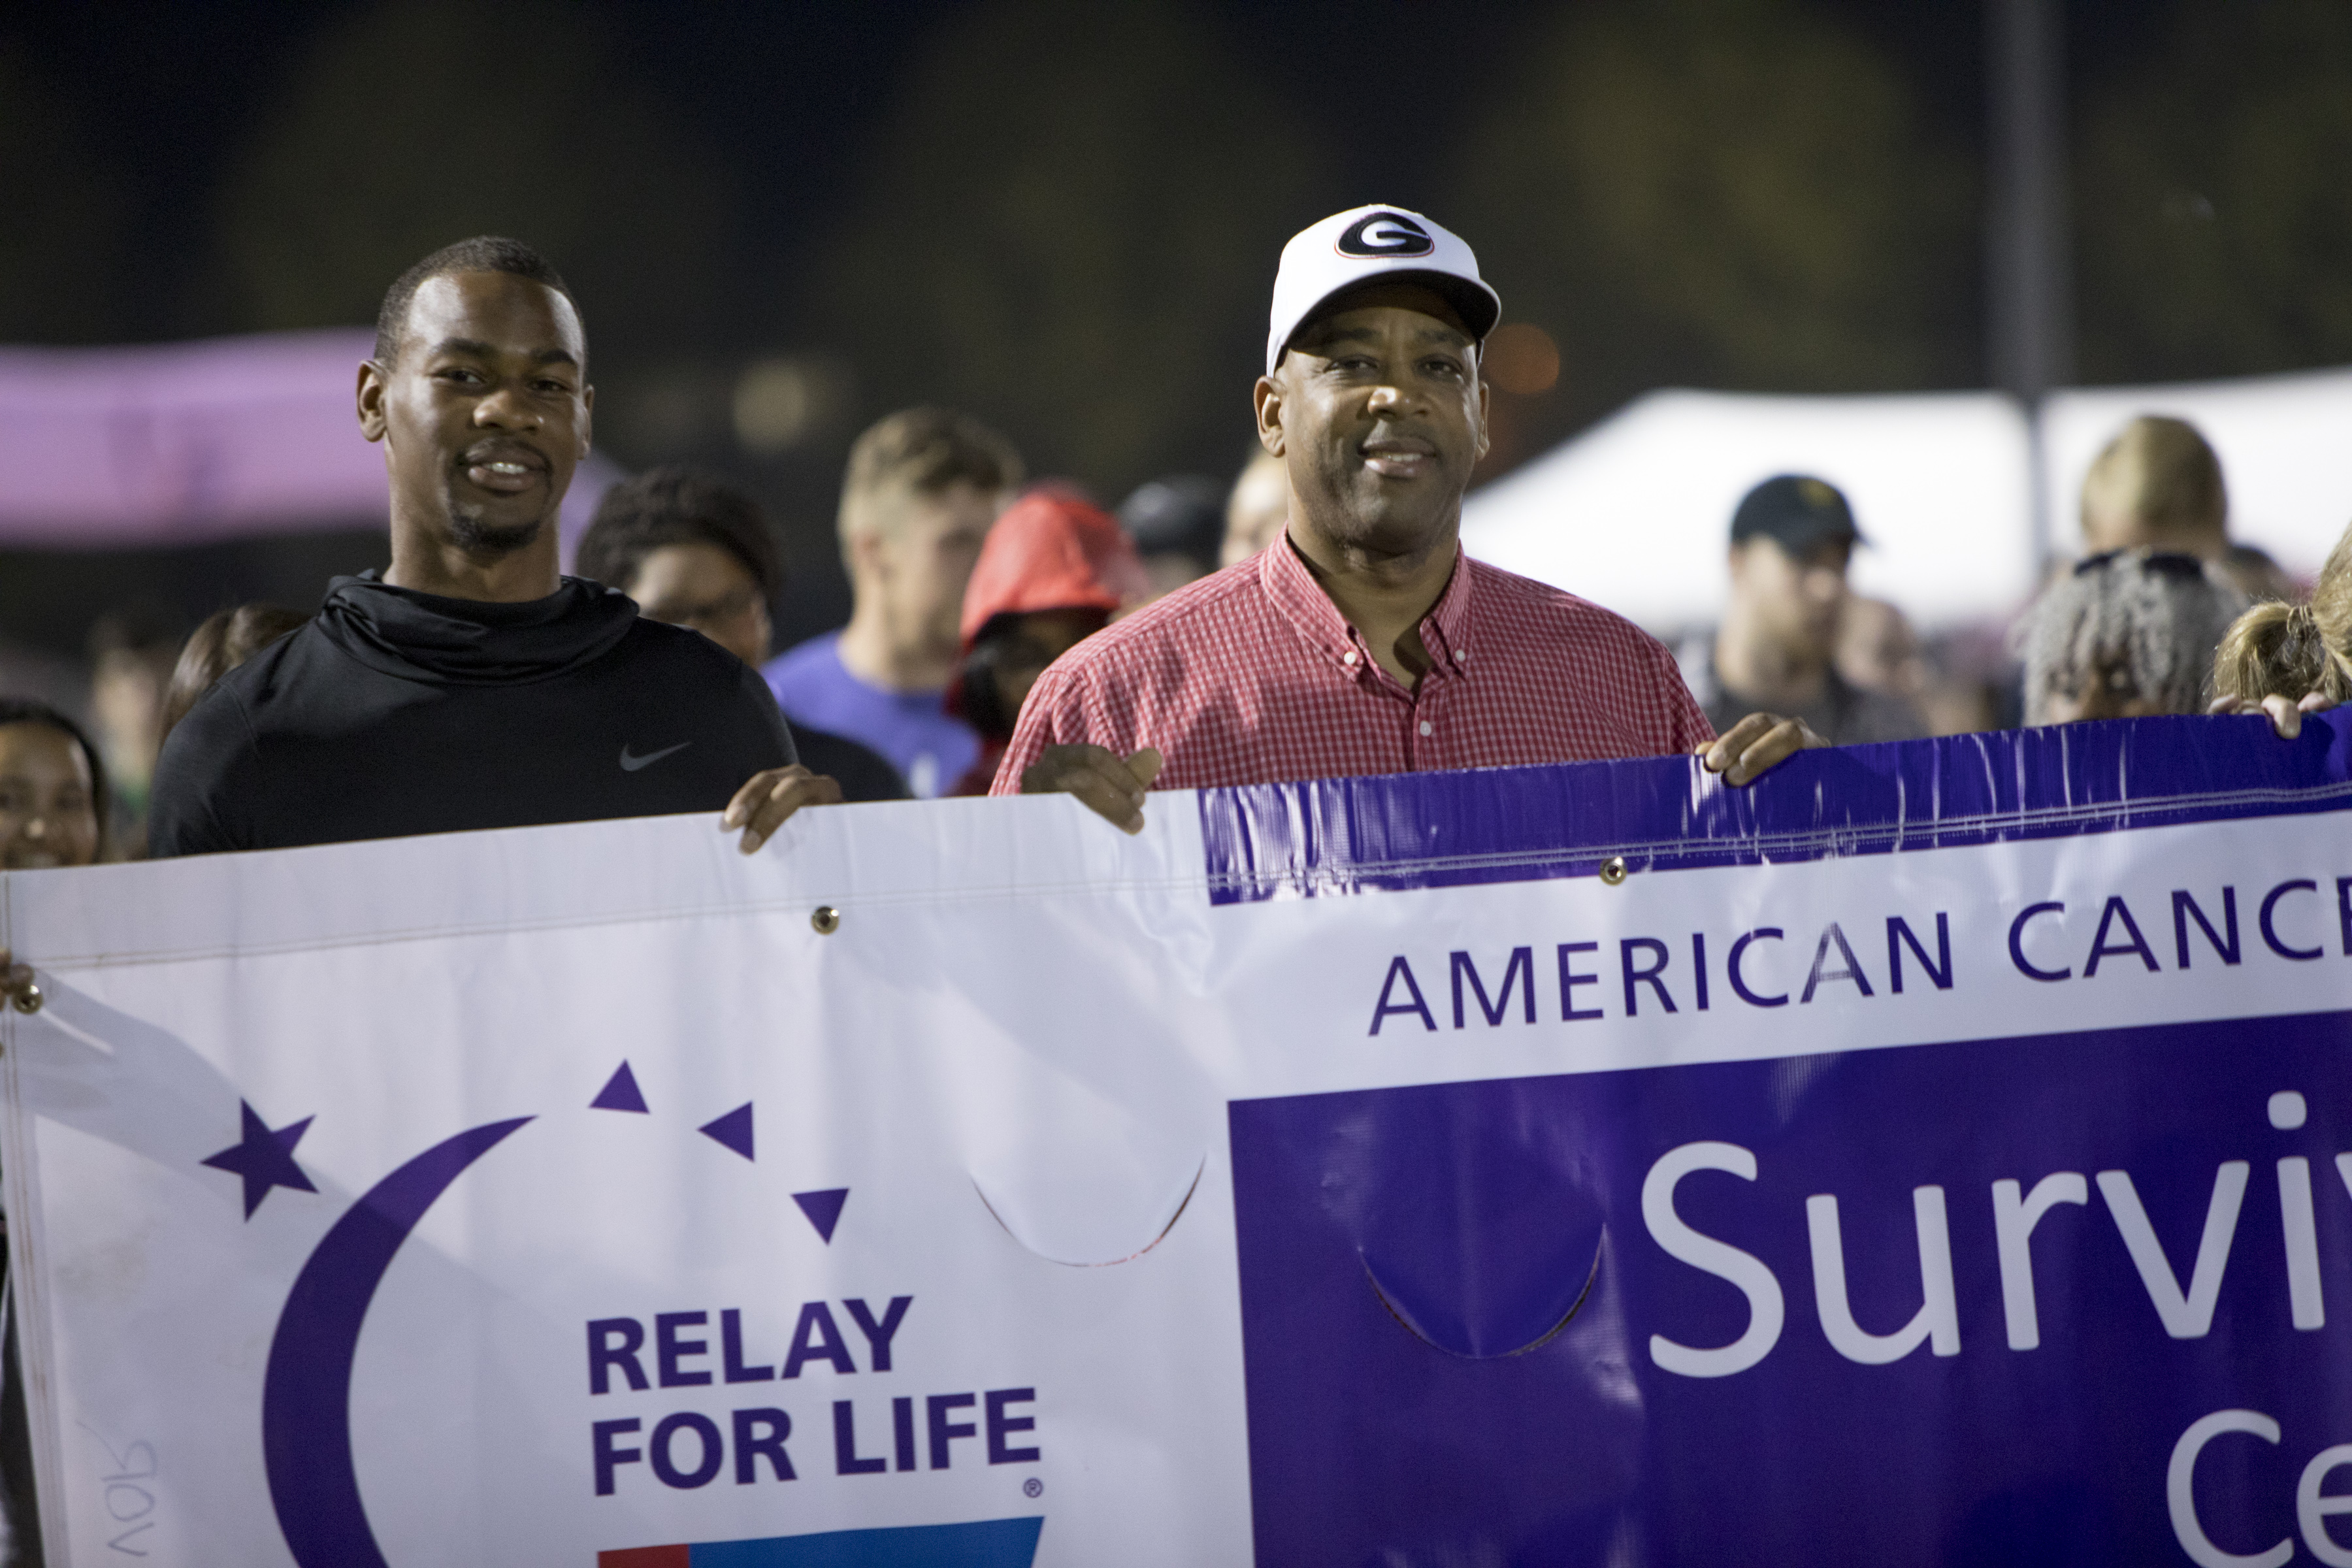 Terry Godwin Jr. and Terry Godwin Sr. during the 2018 Relay for Life at the  UGA intramural fields. (Chad Osburn/UGA)